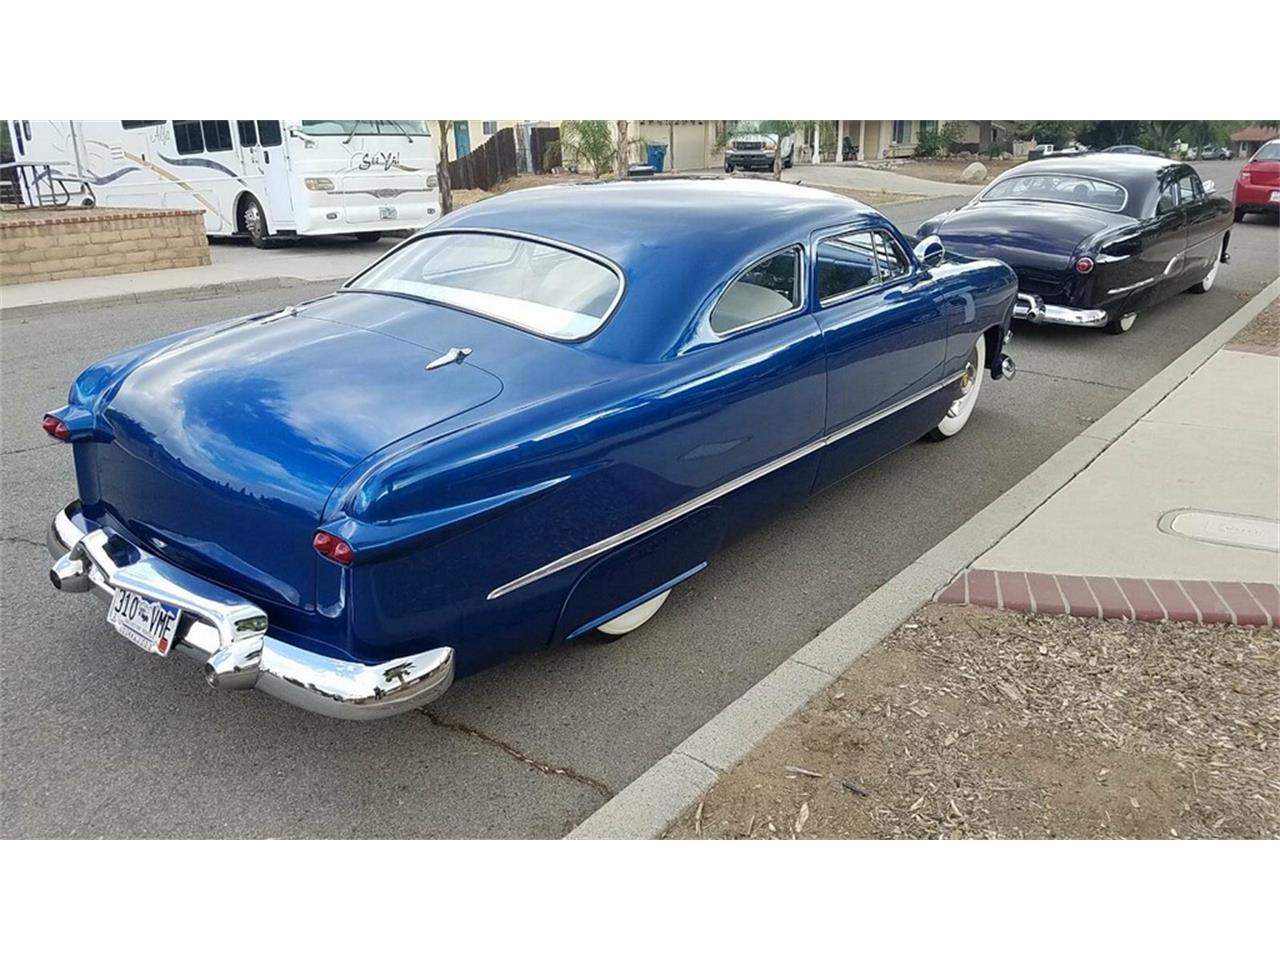 Large Picture of Classic '50 Ford Tudor located in California - $58,000.00 Offered by a Private Seller - PZ3K